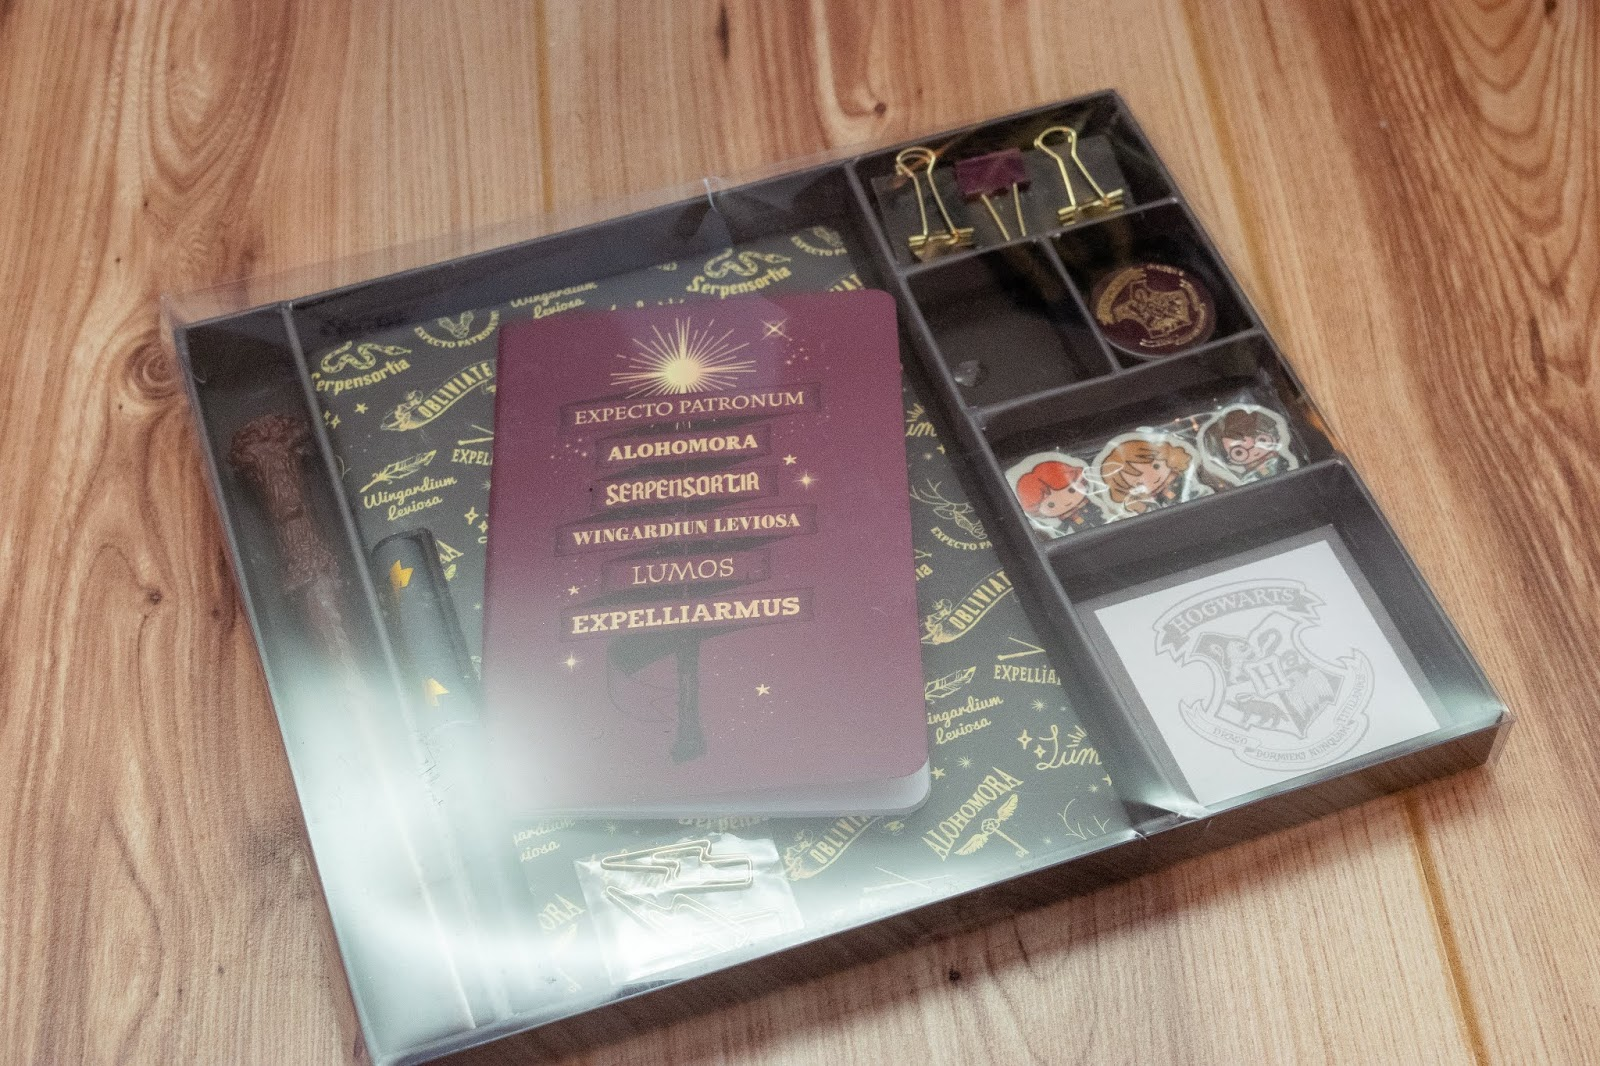 A Harry Potter stationery gift set.